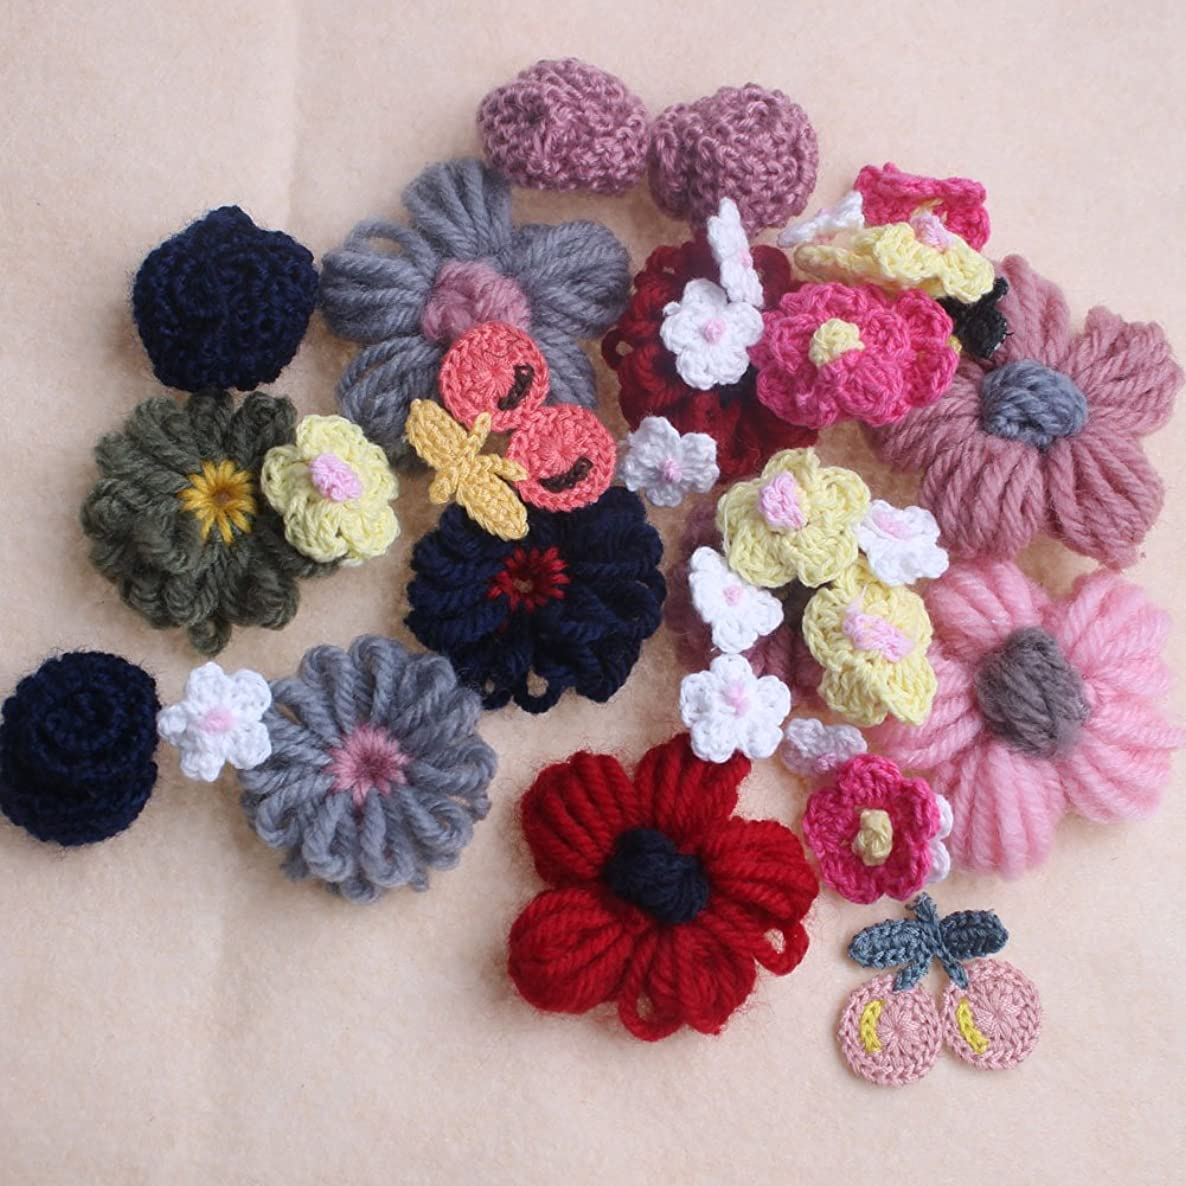 36pcs Embroidery Corchet Flowers Cherrys Appliques Sewing Embellishments Mixed Sizes